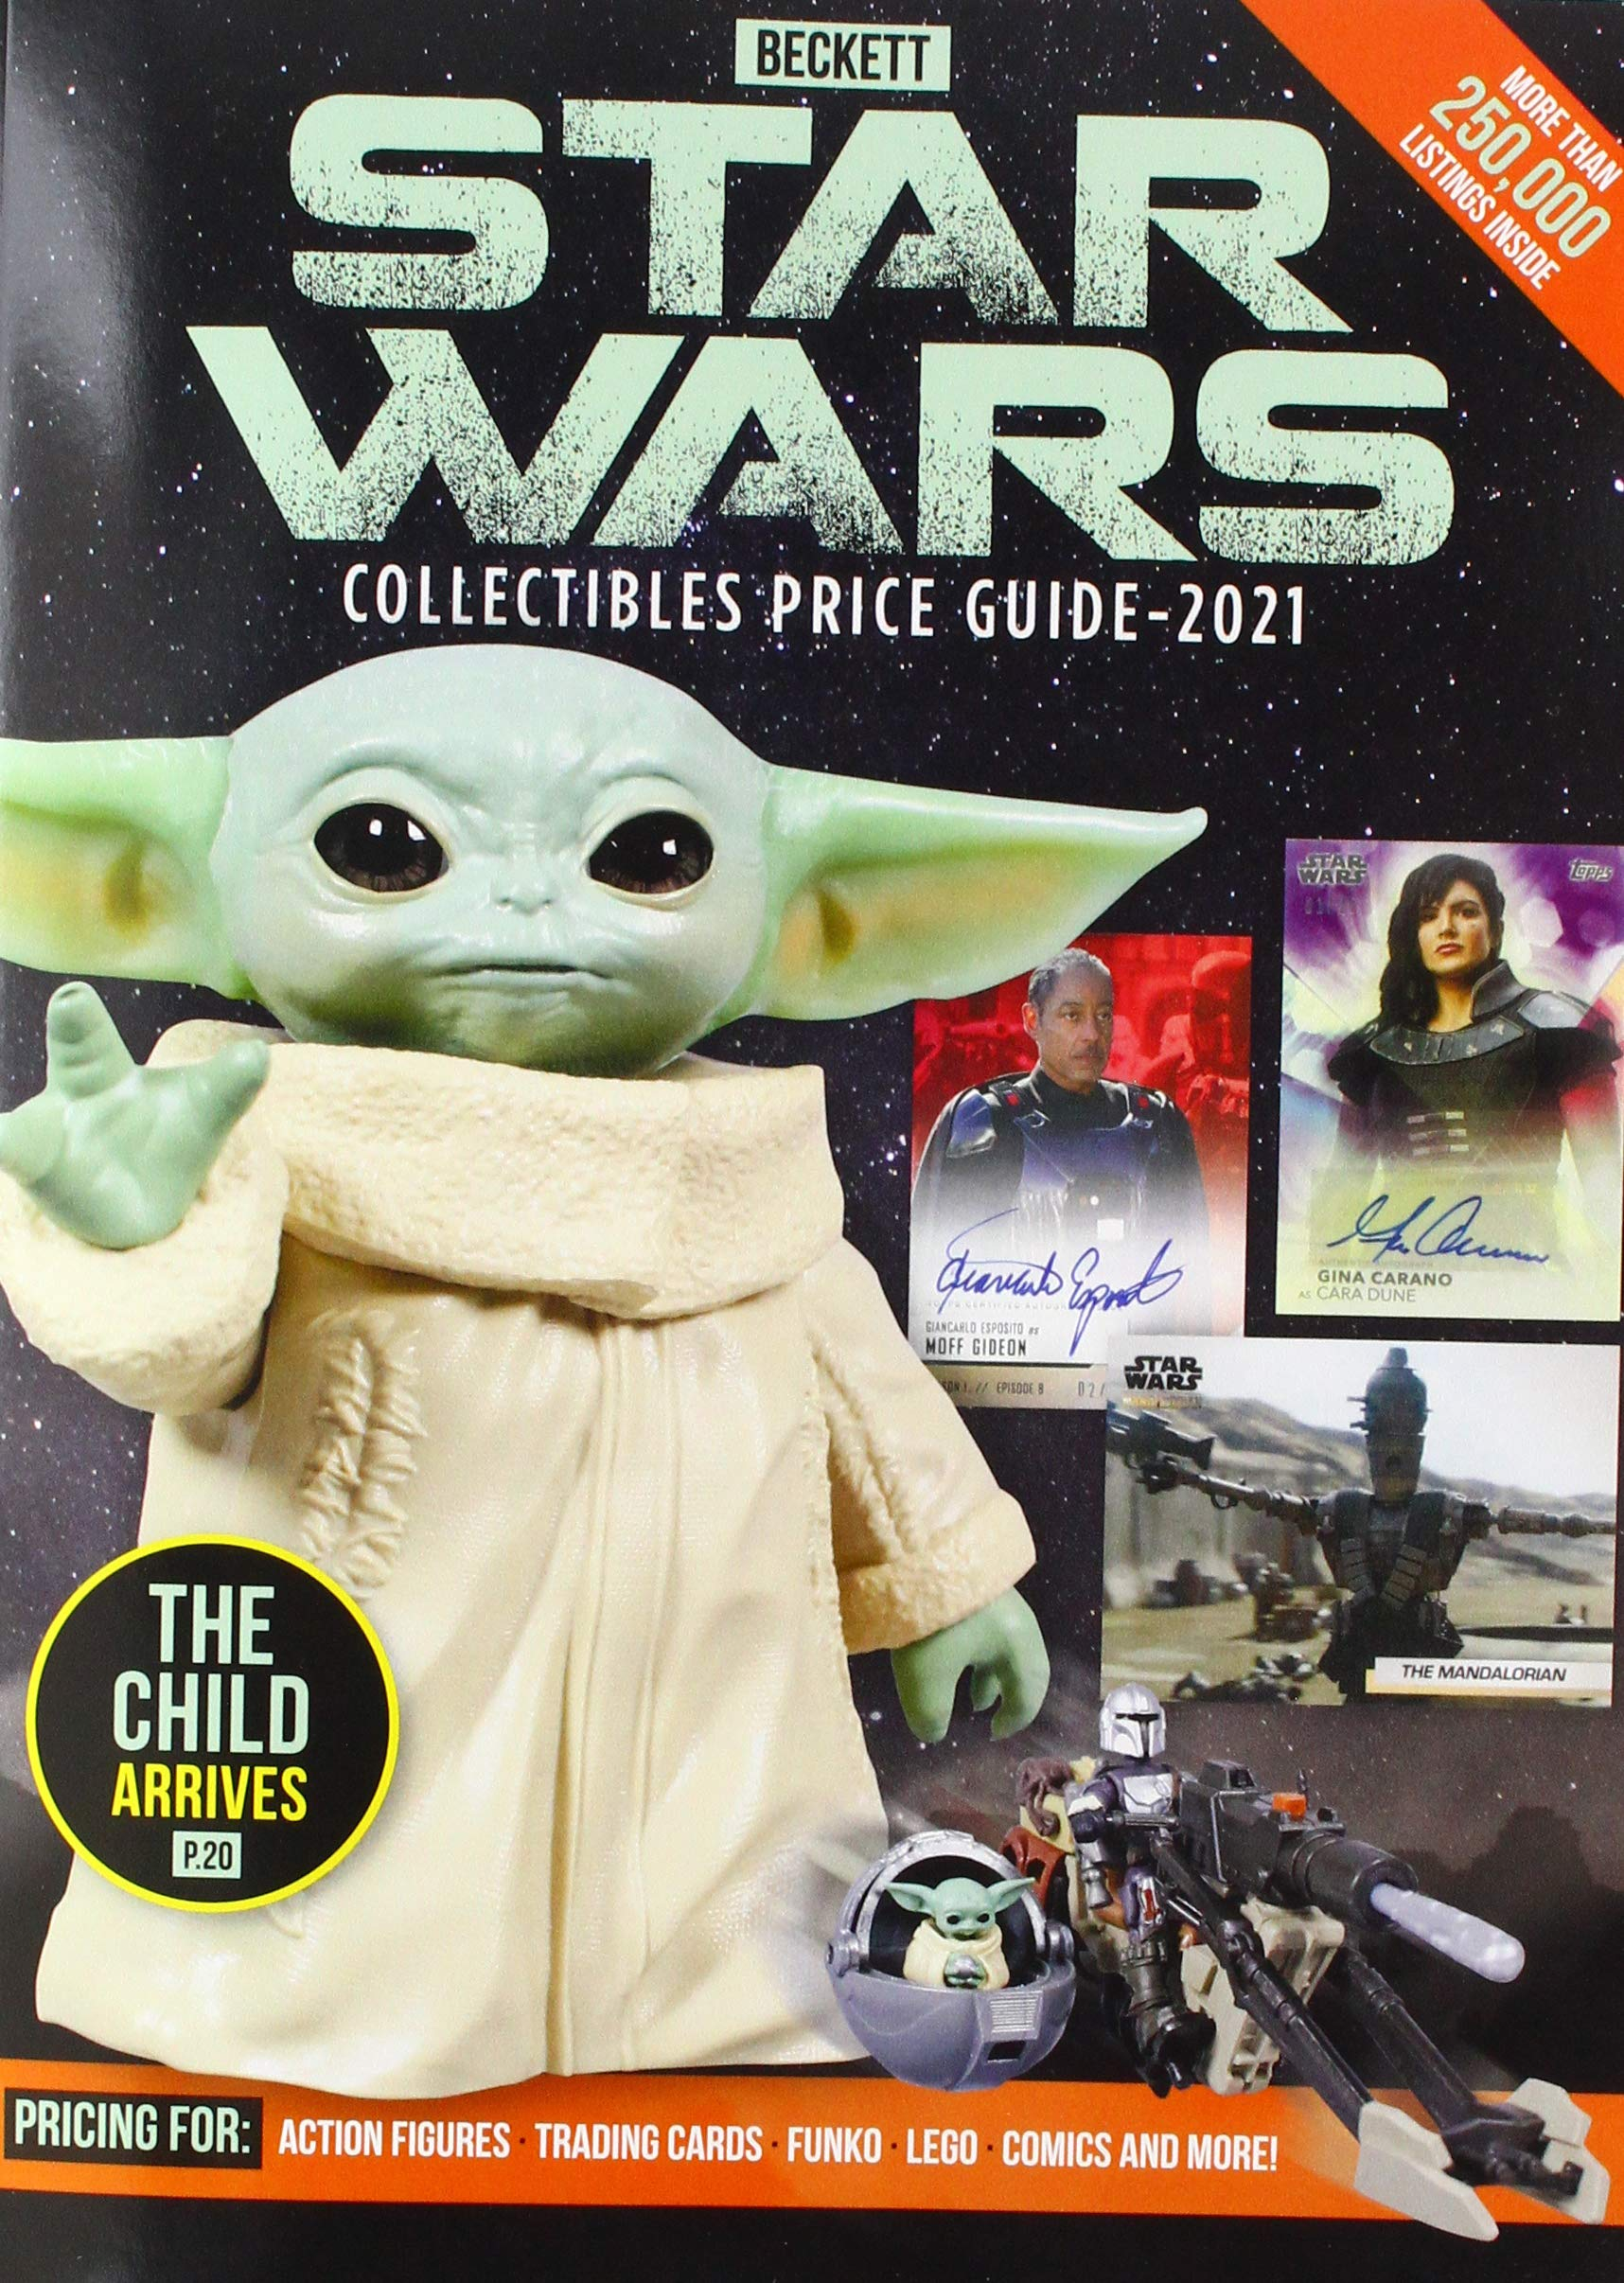 Beckett's Star Wars Collectibles Price Guide 2021